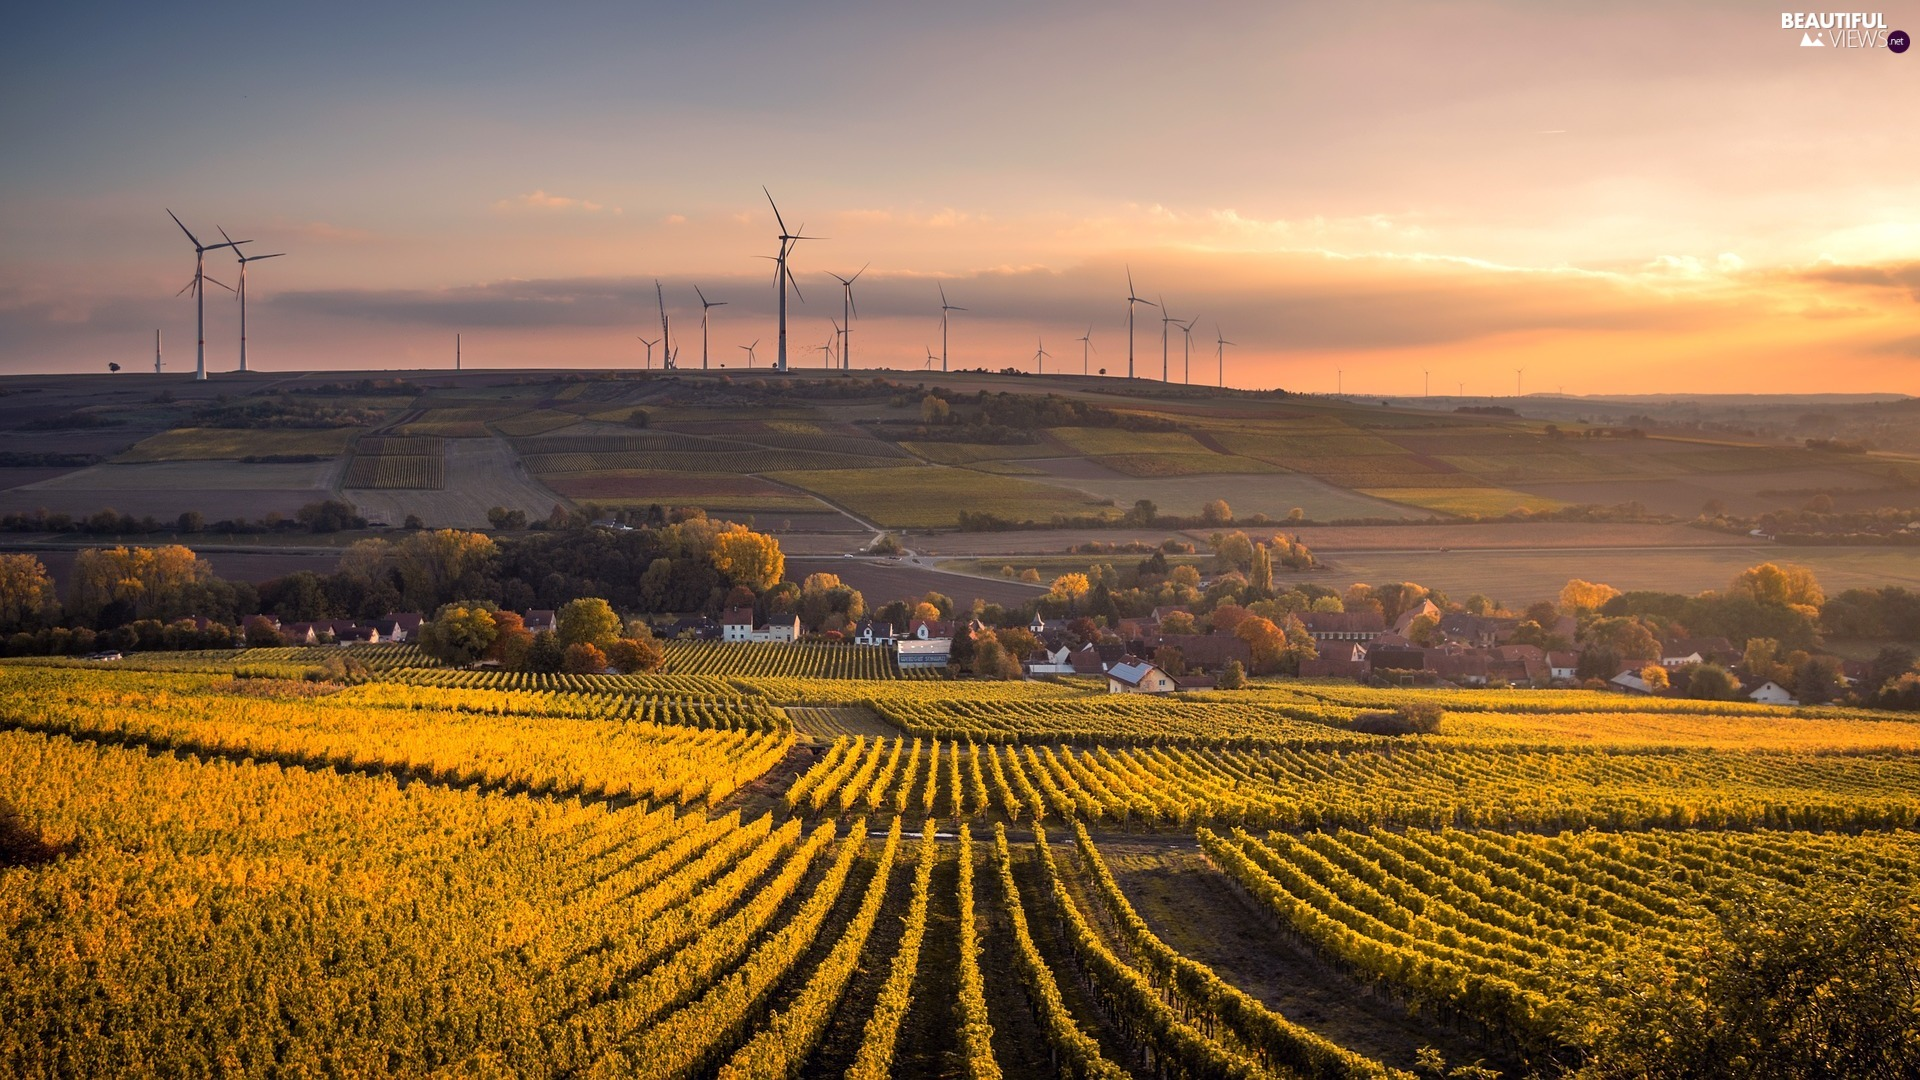 Windmills, Field, trees, viewes, Houses, vineyard